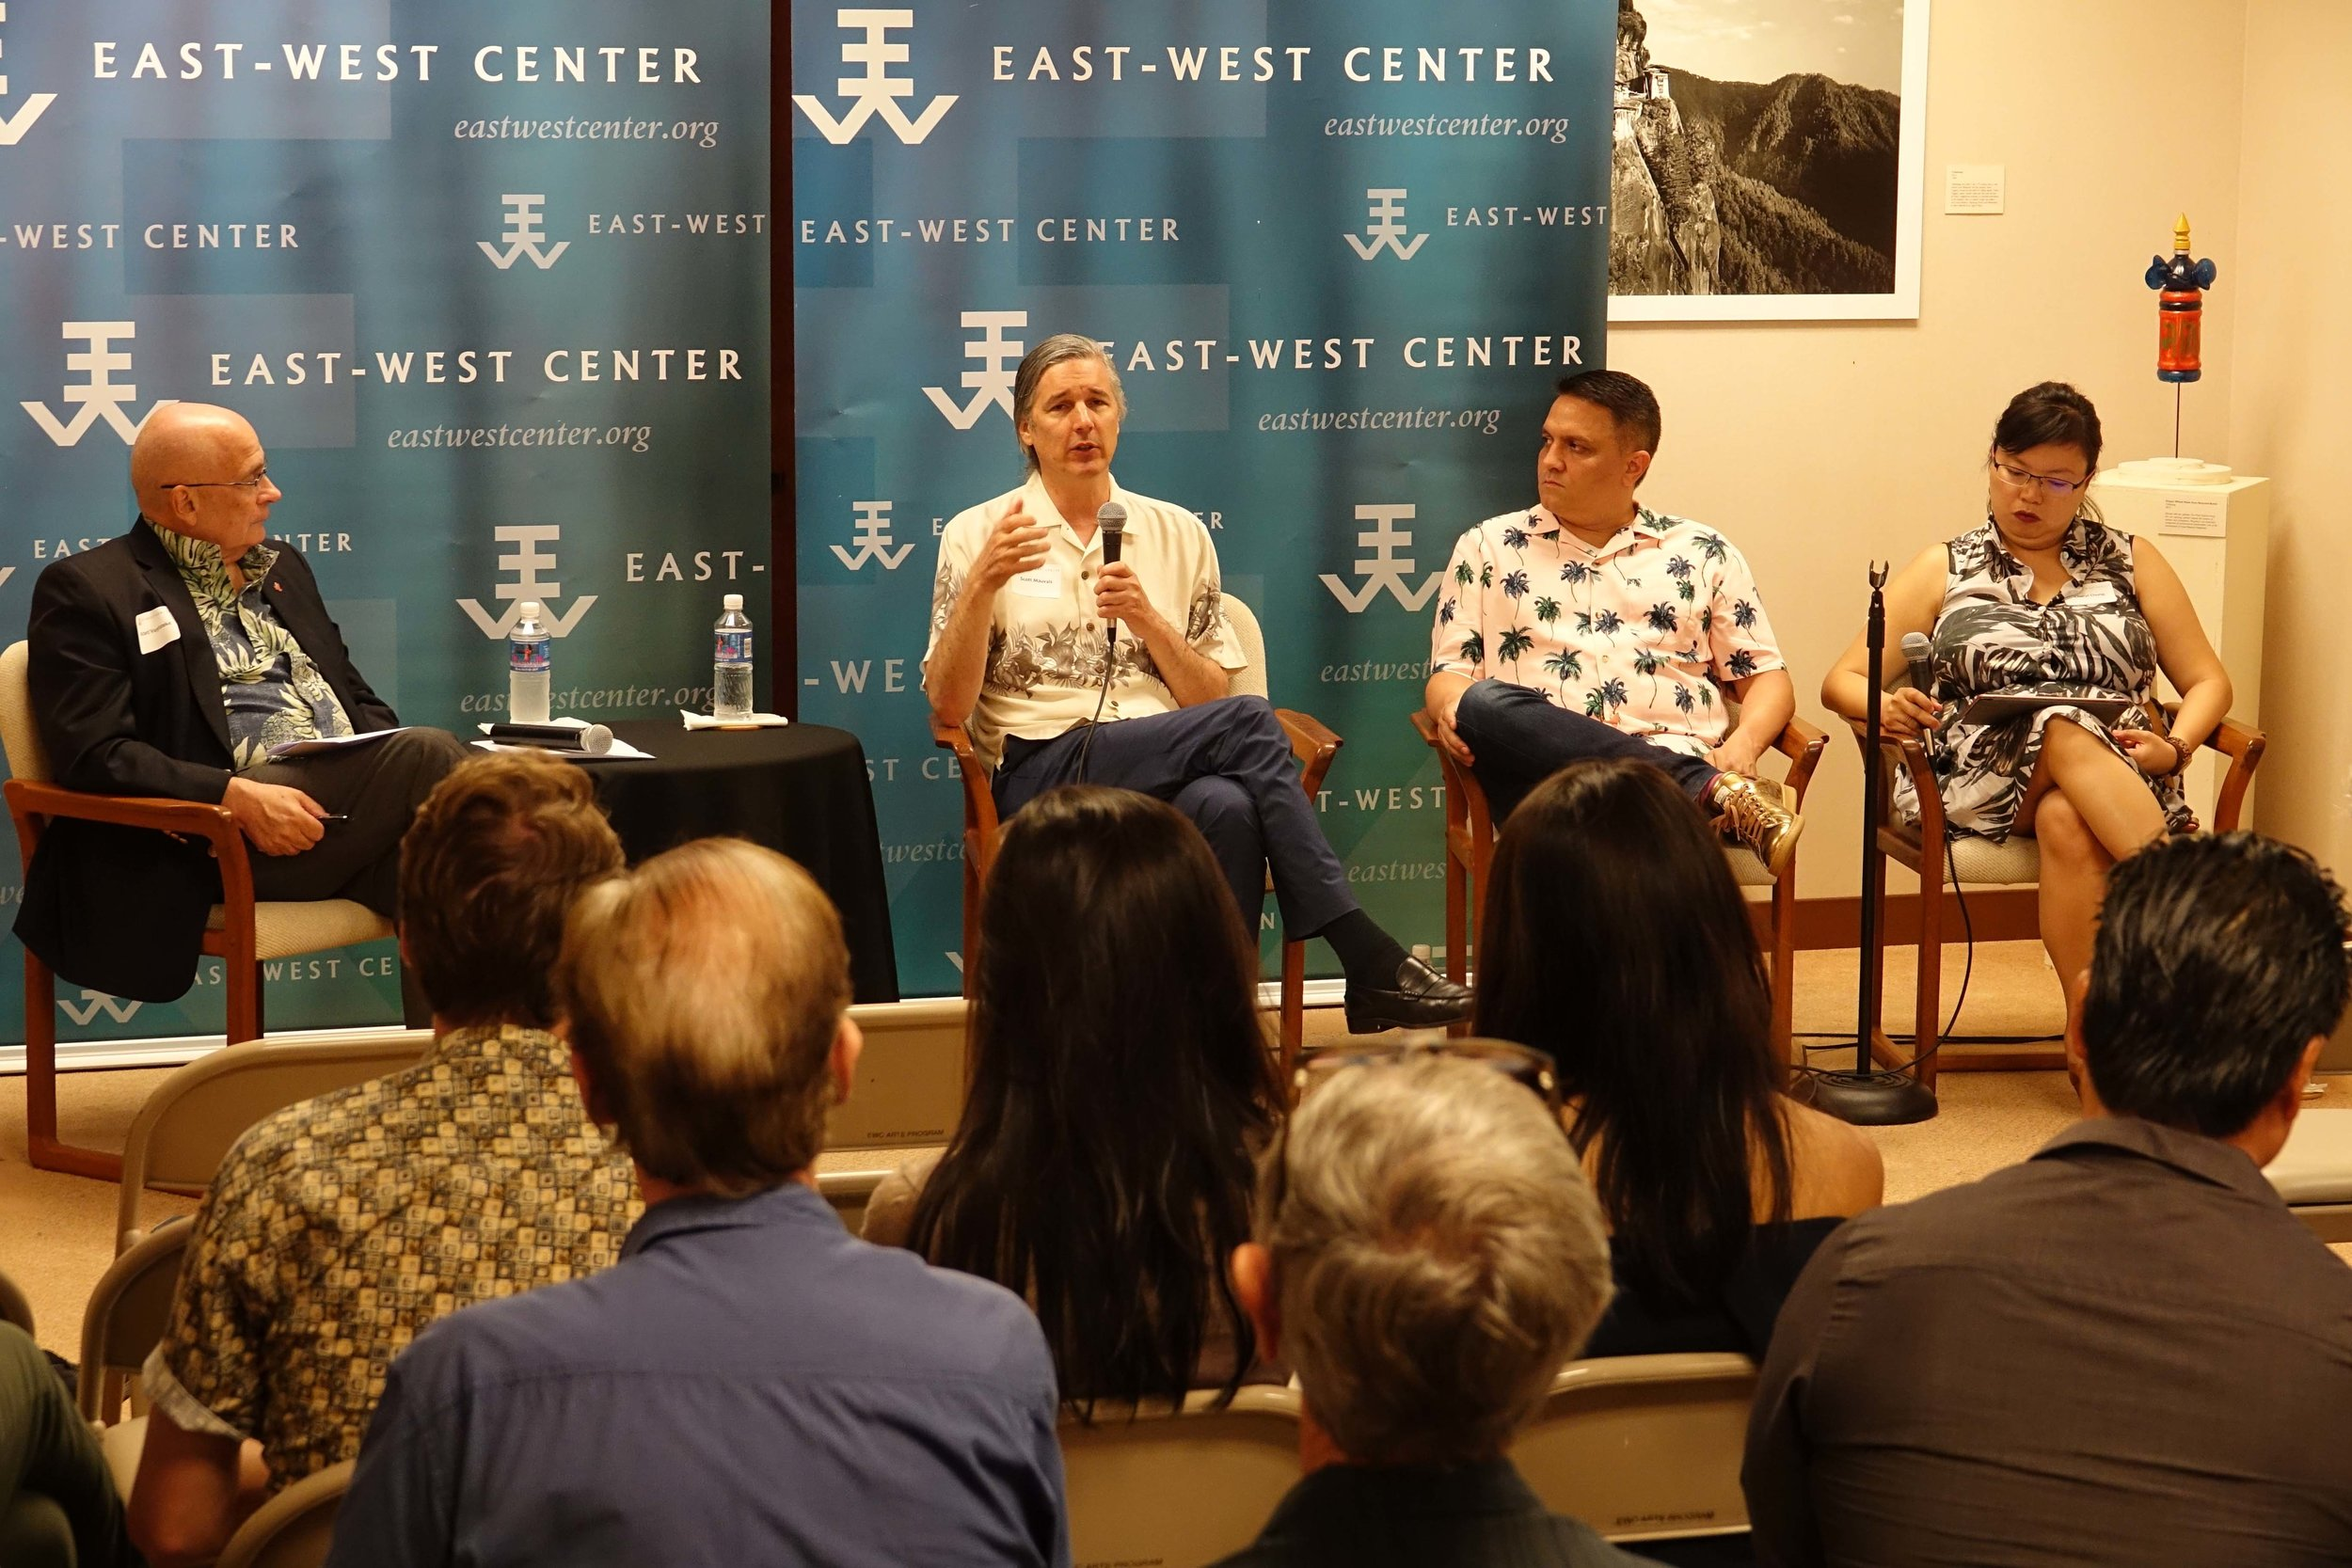 EWC President Richard Vuylsteke and panel speakers Scott Mauvais, Miguel Gamino and Cheryl Chung.  Photo credit: Eric Chang,  East-West Center